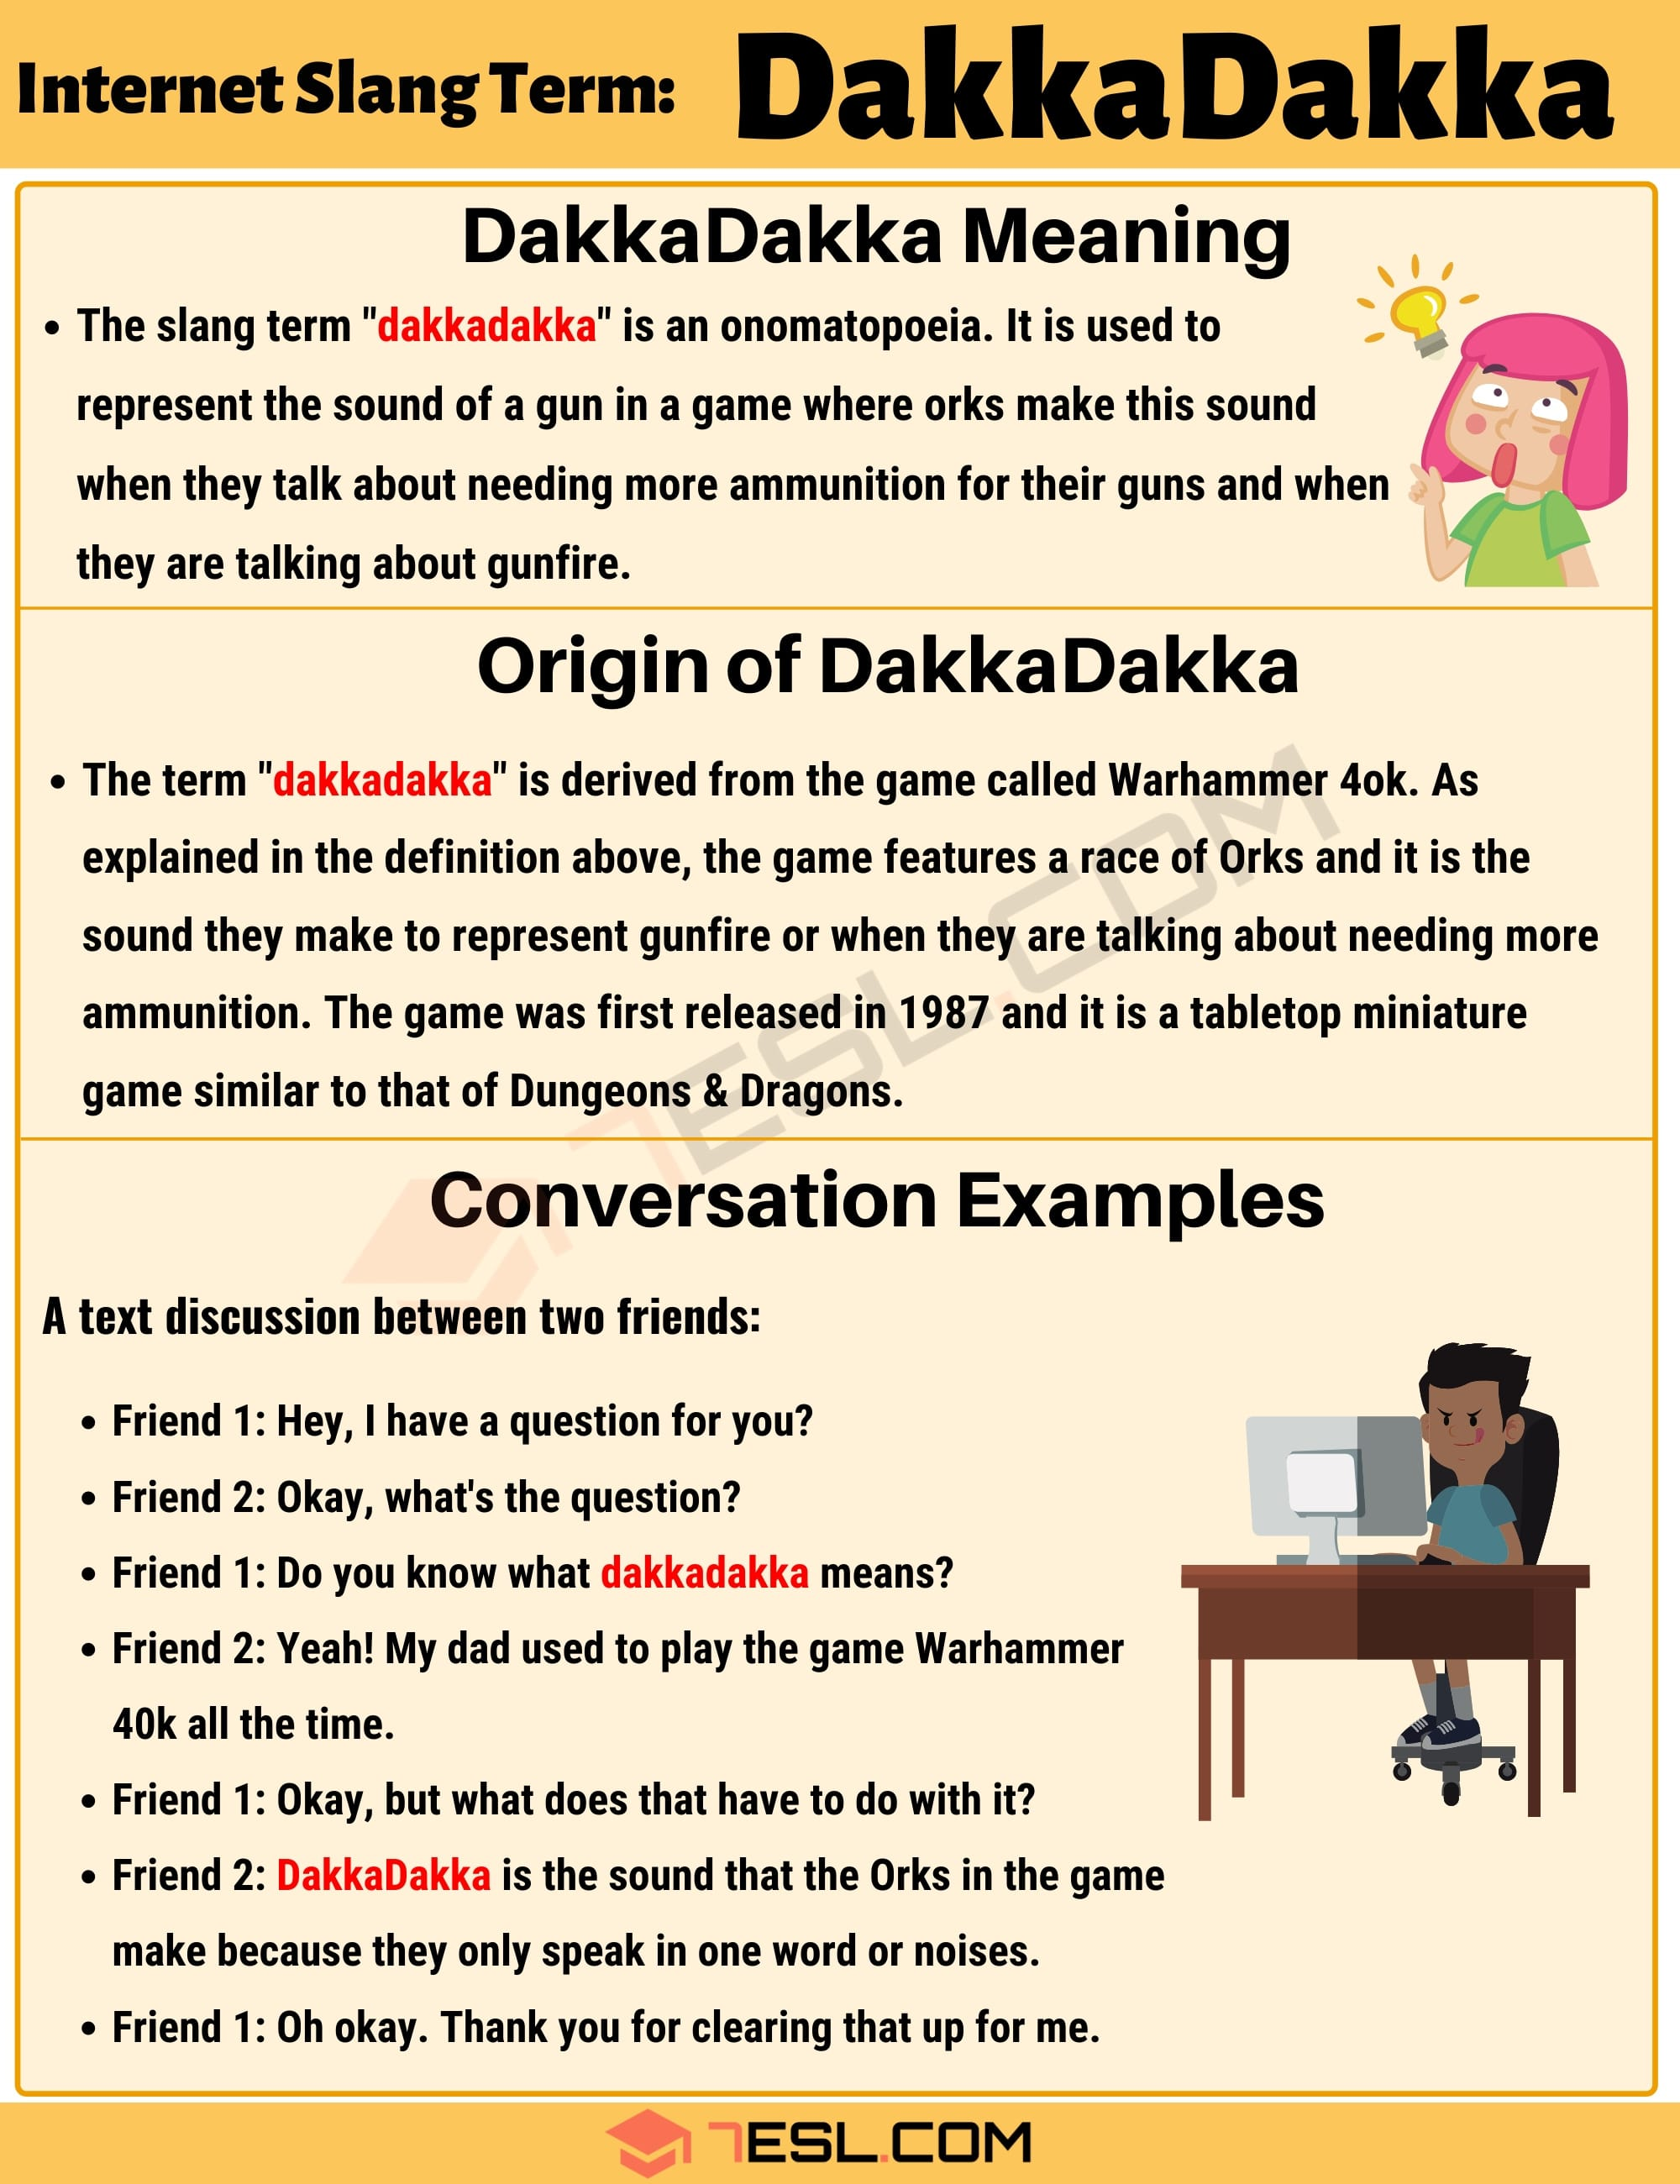 DakkaDakka Meaning: What Does this Internet Slang Term Mean?